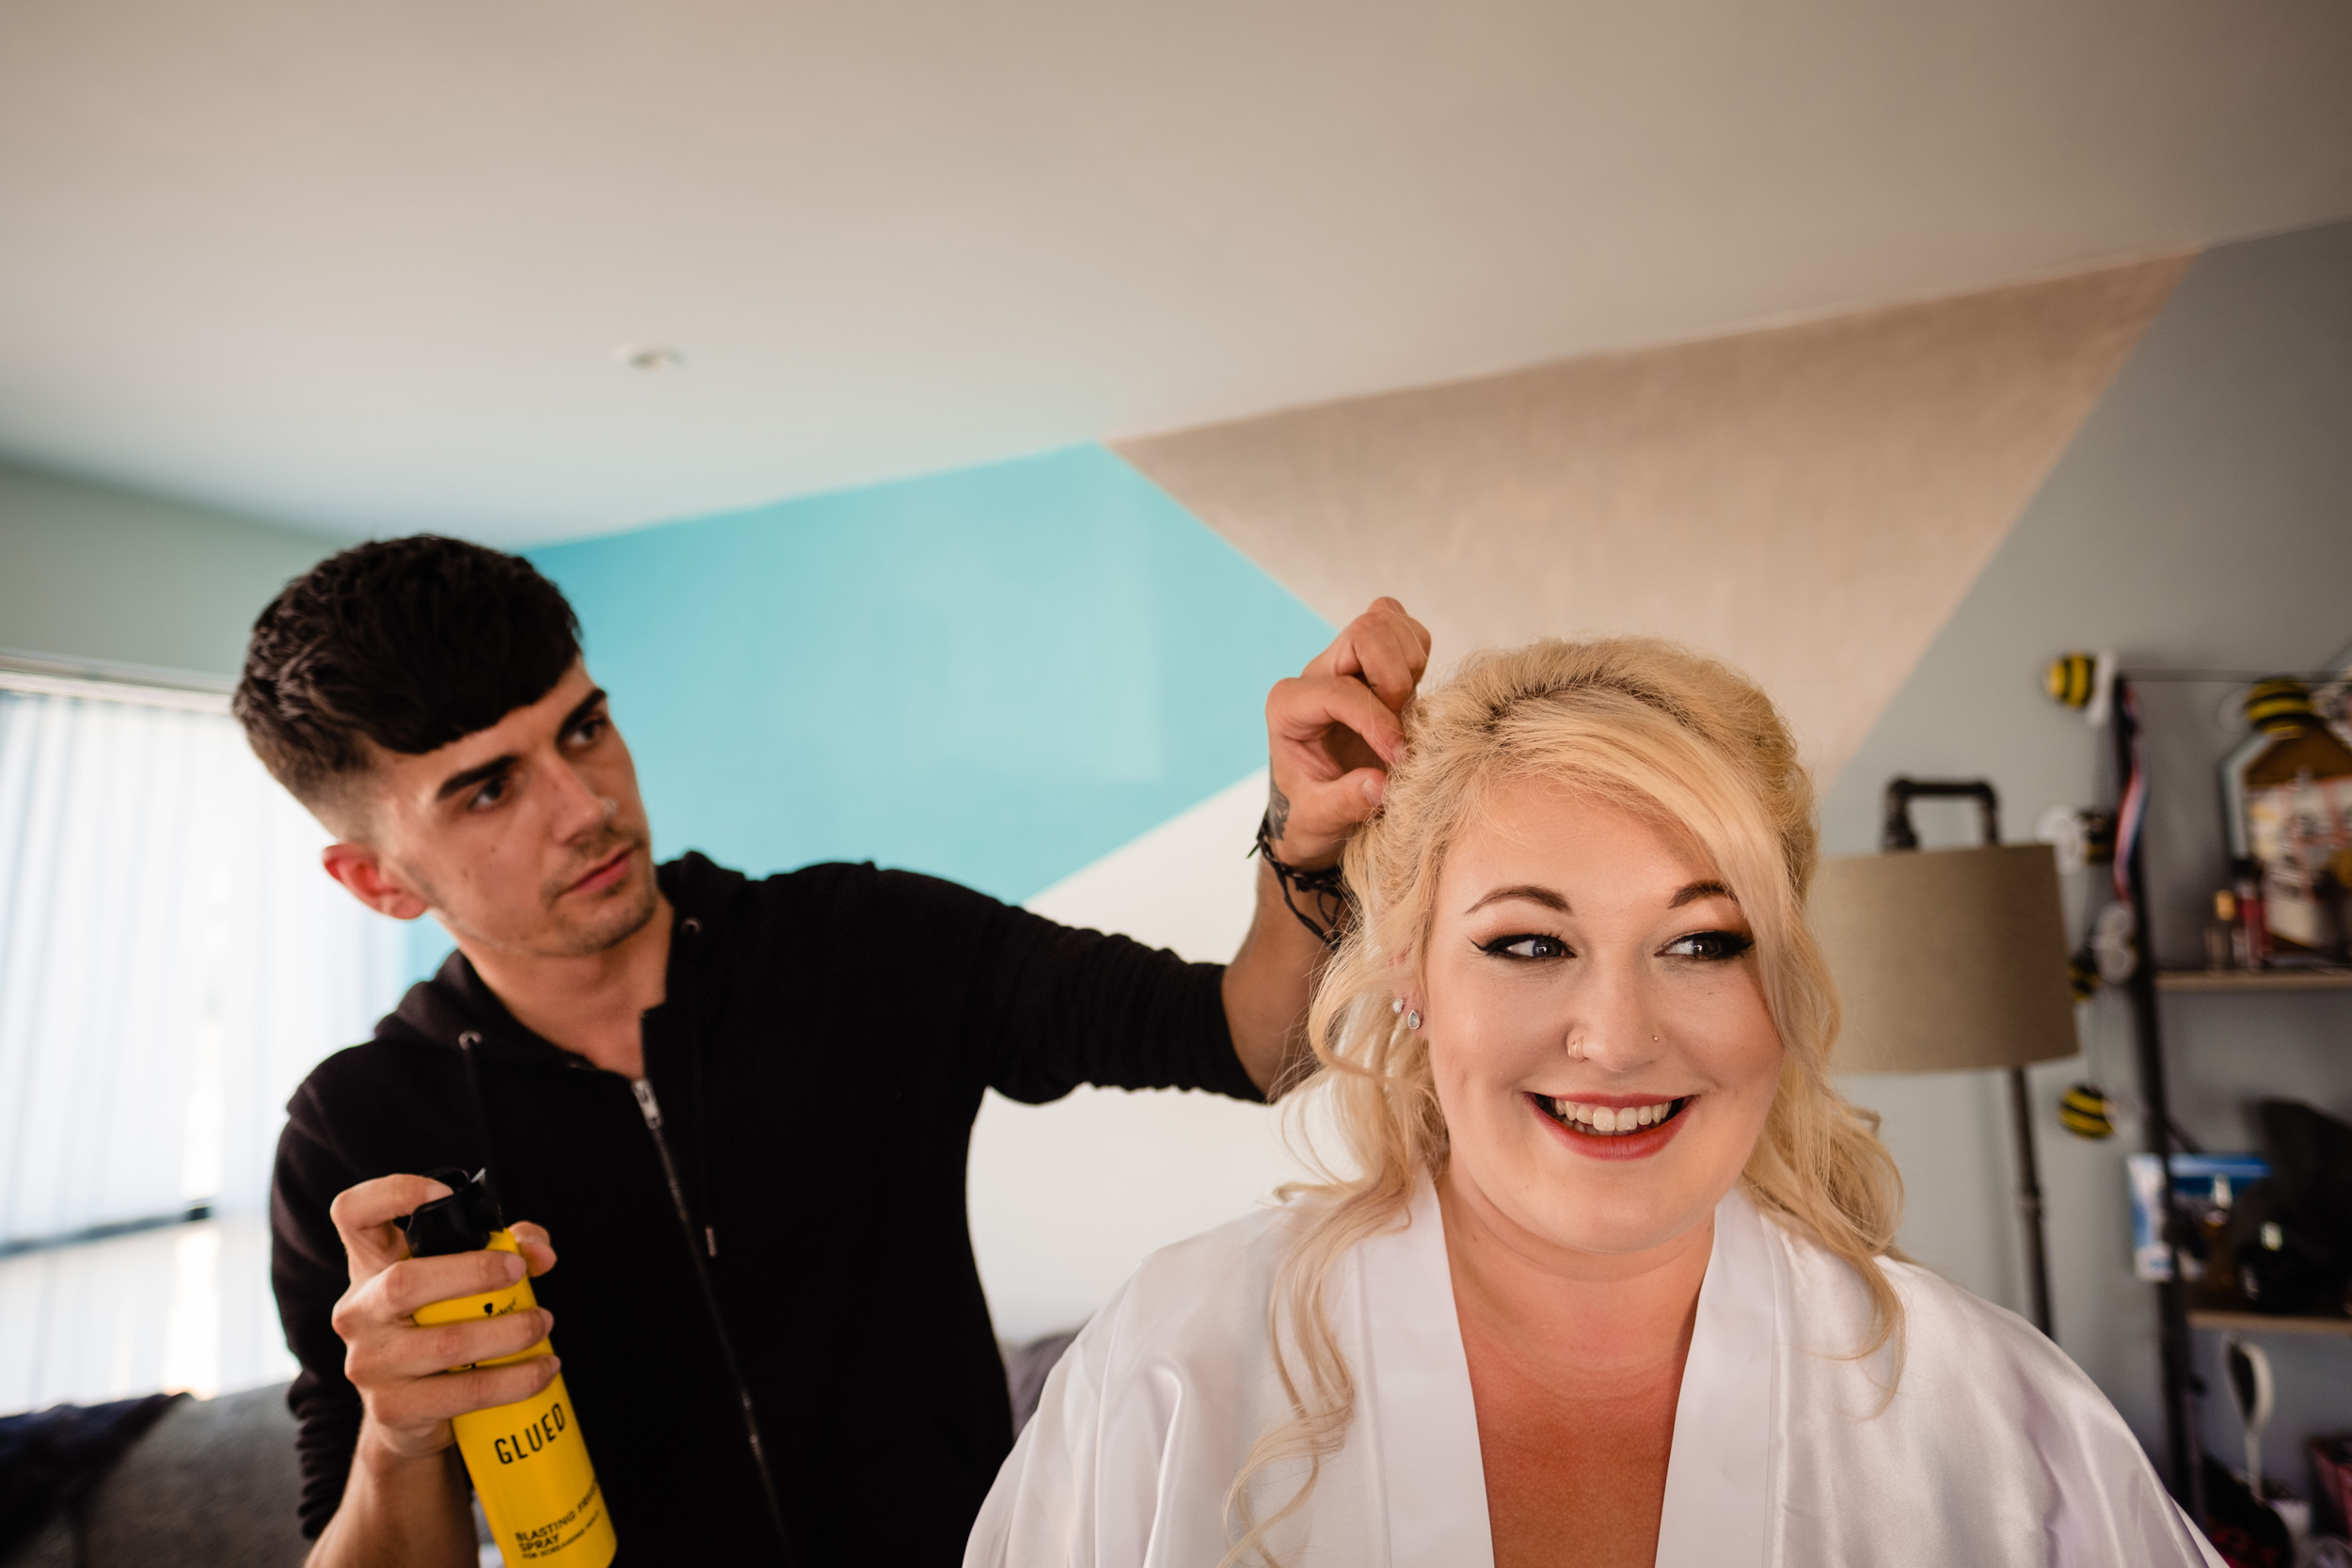 bride getting hair fixed with hairspray. plough inn, hathersage wedding photography by emma and rich.